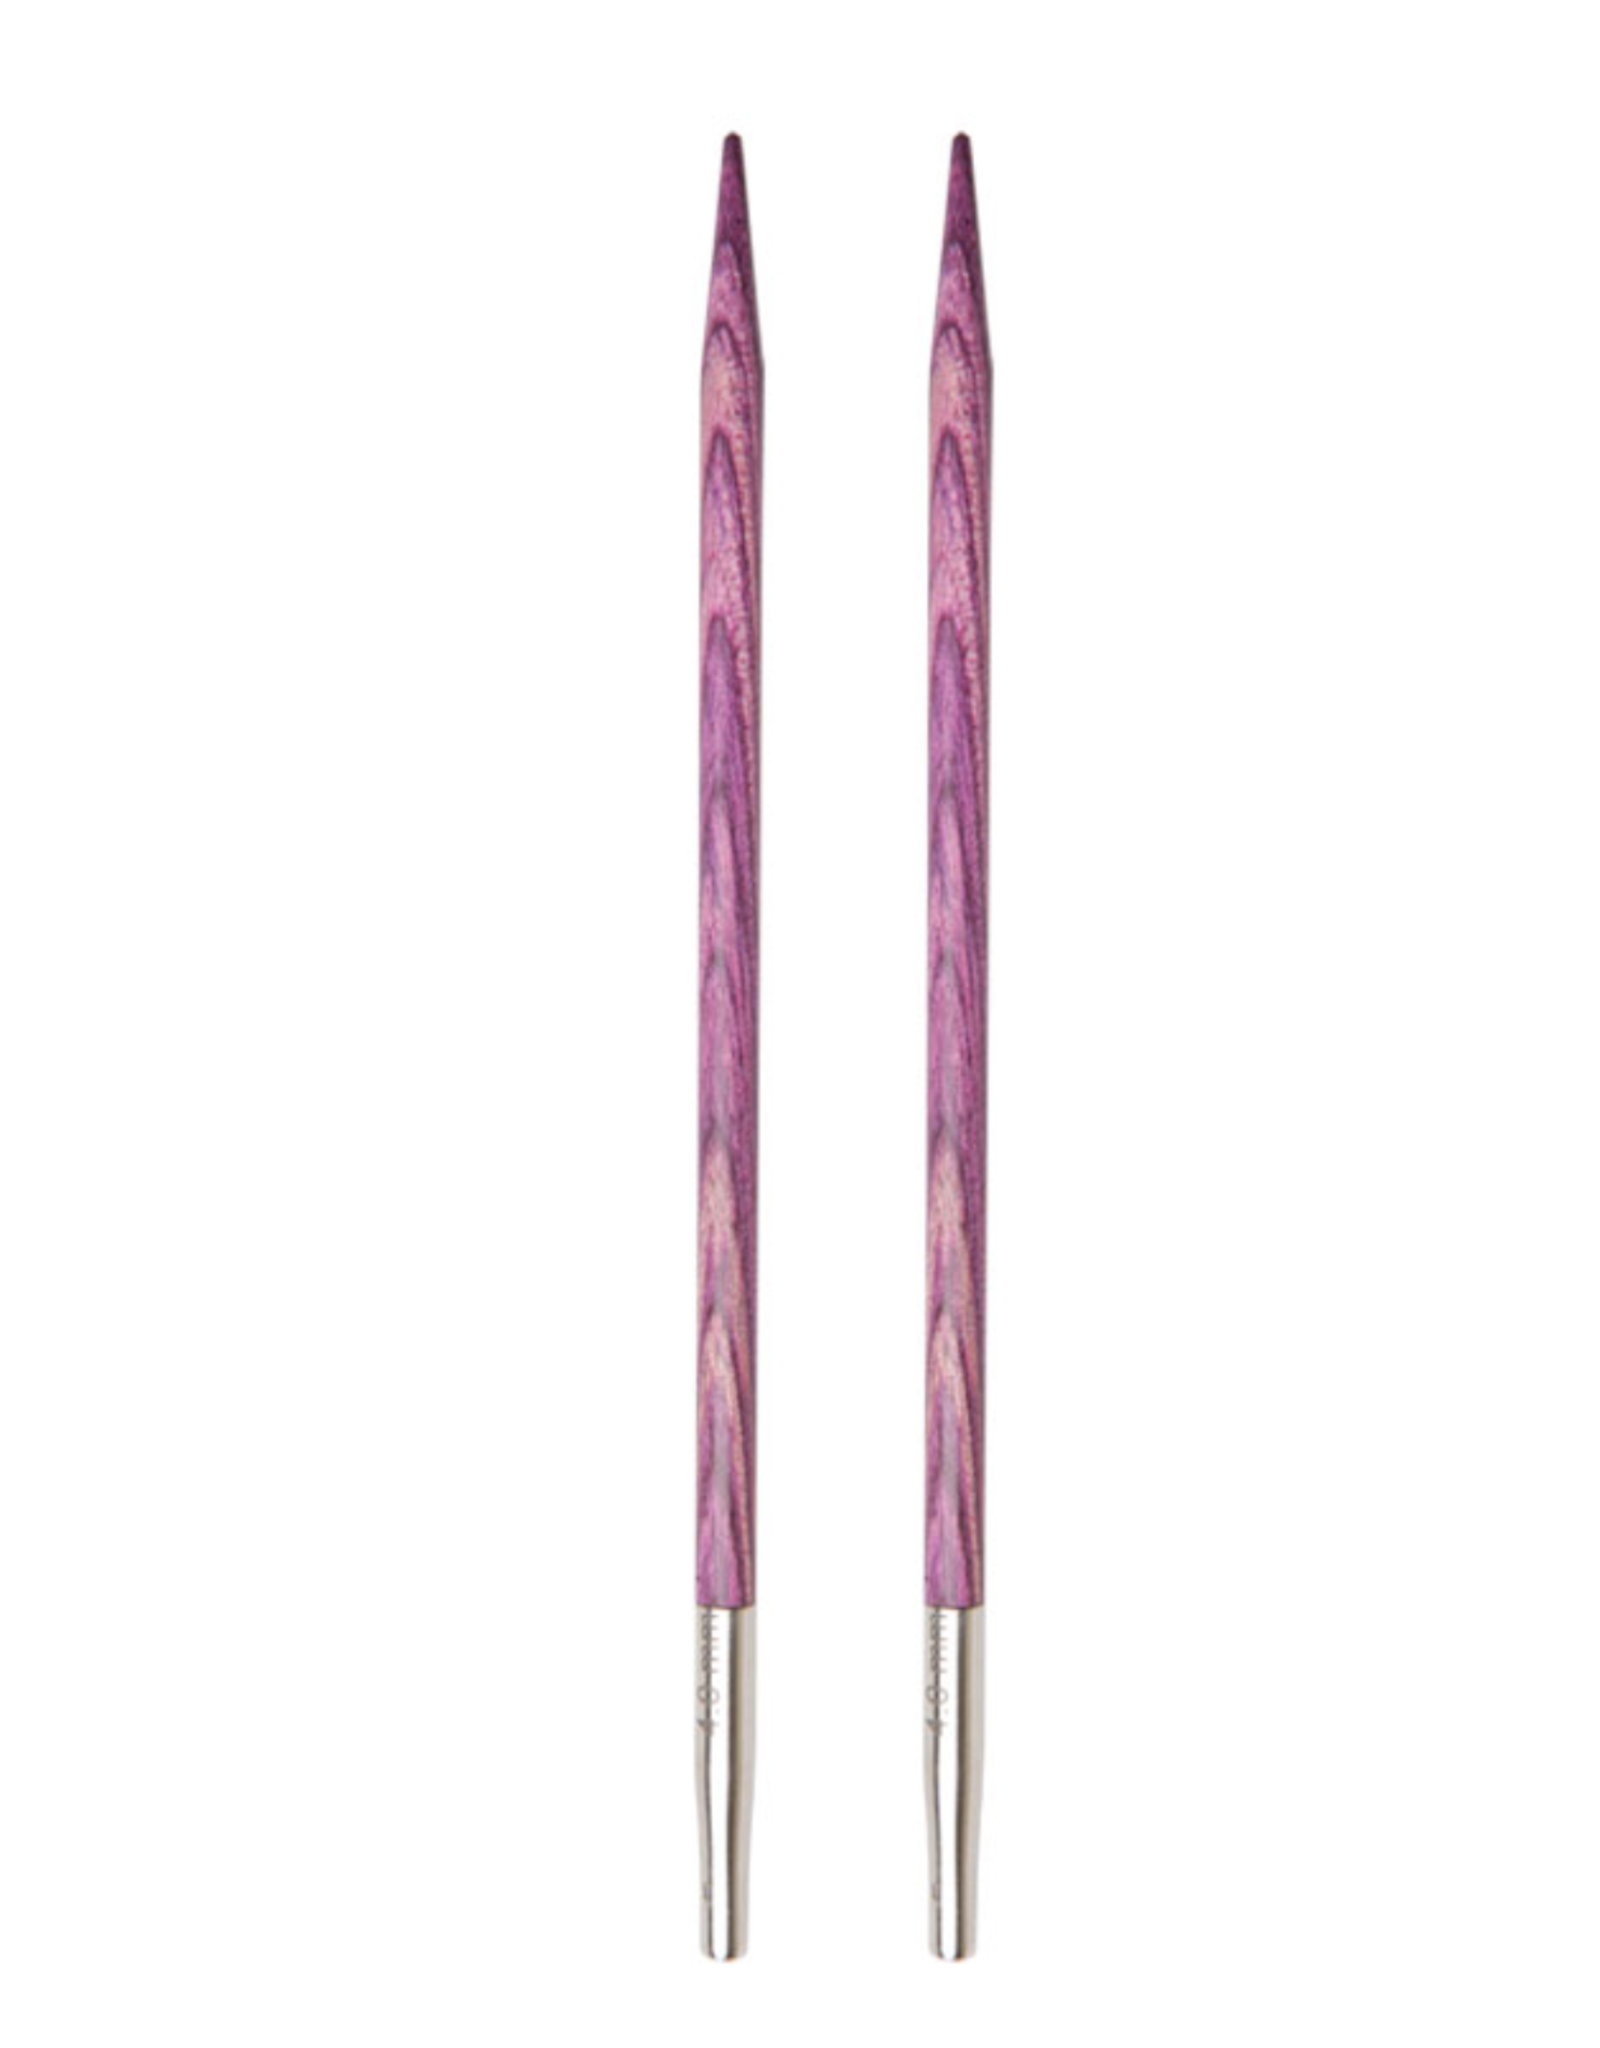 "Dreamz size US 6 interchangeable needle tips for 24"" cords and up."